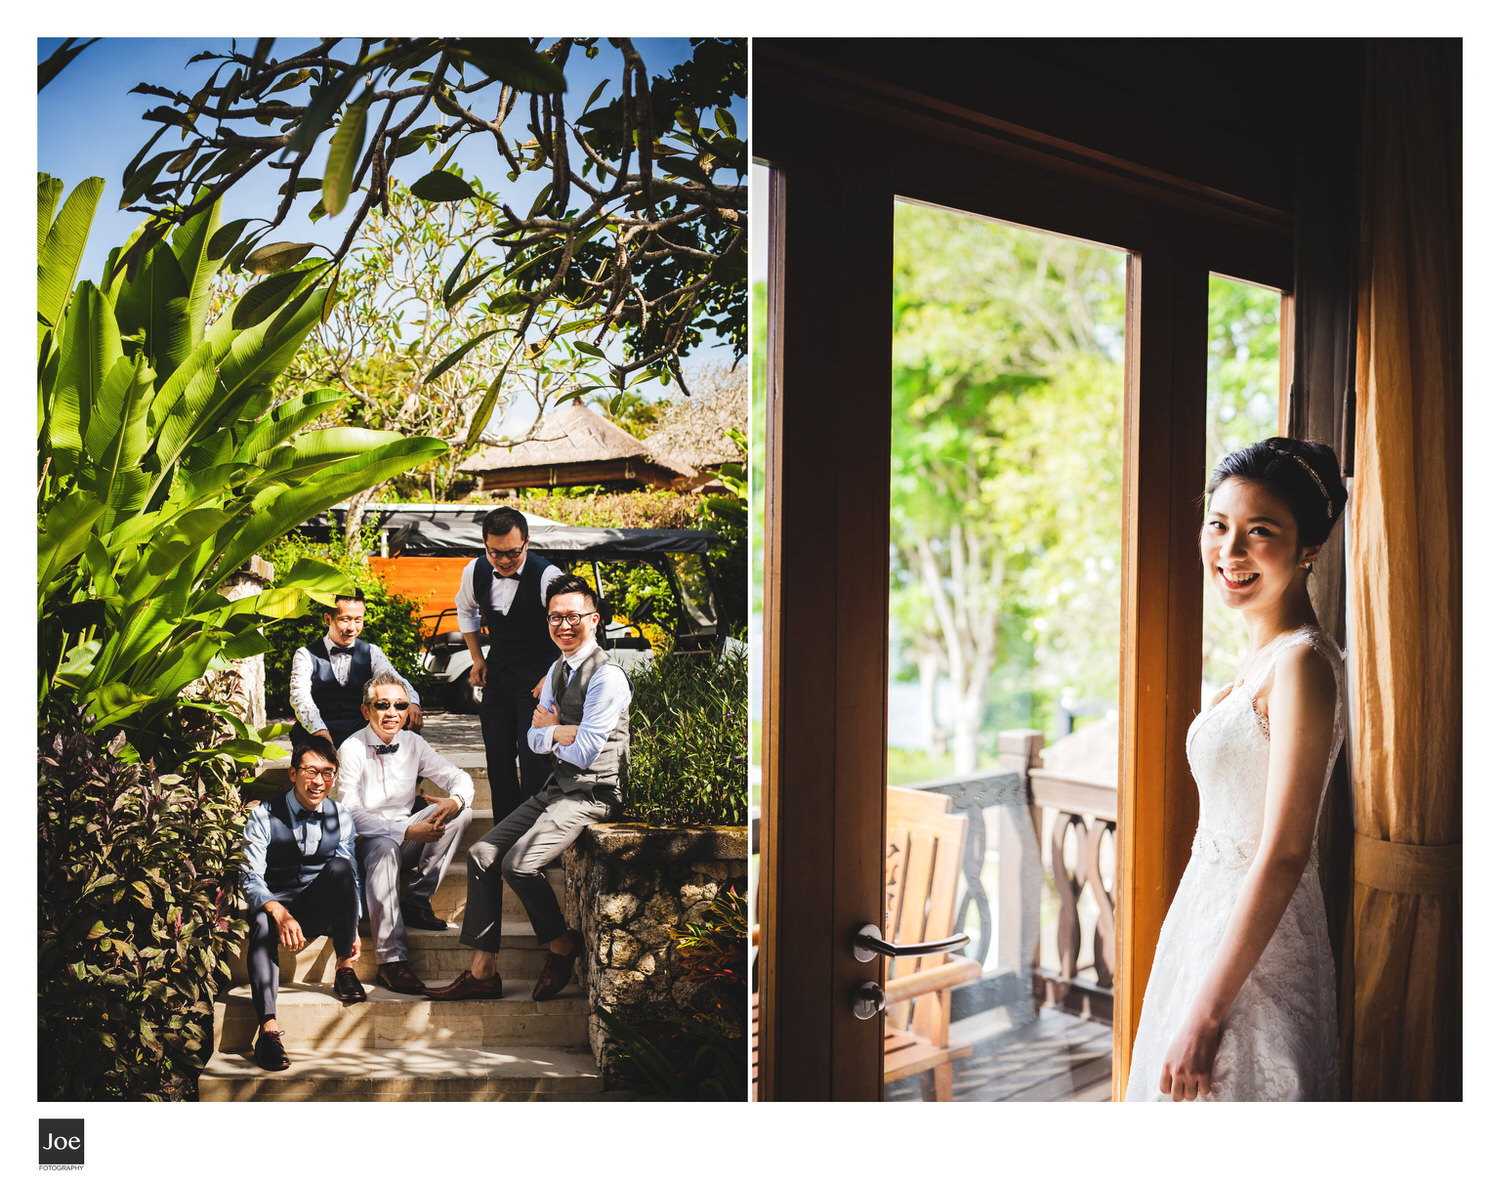 joe-fotography-bali-wedding-ayana-resort-janie-sean-31.jpg